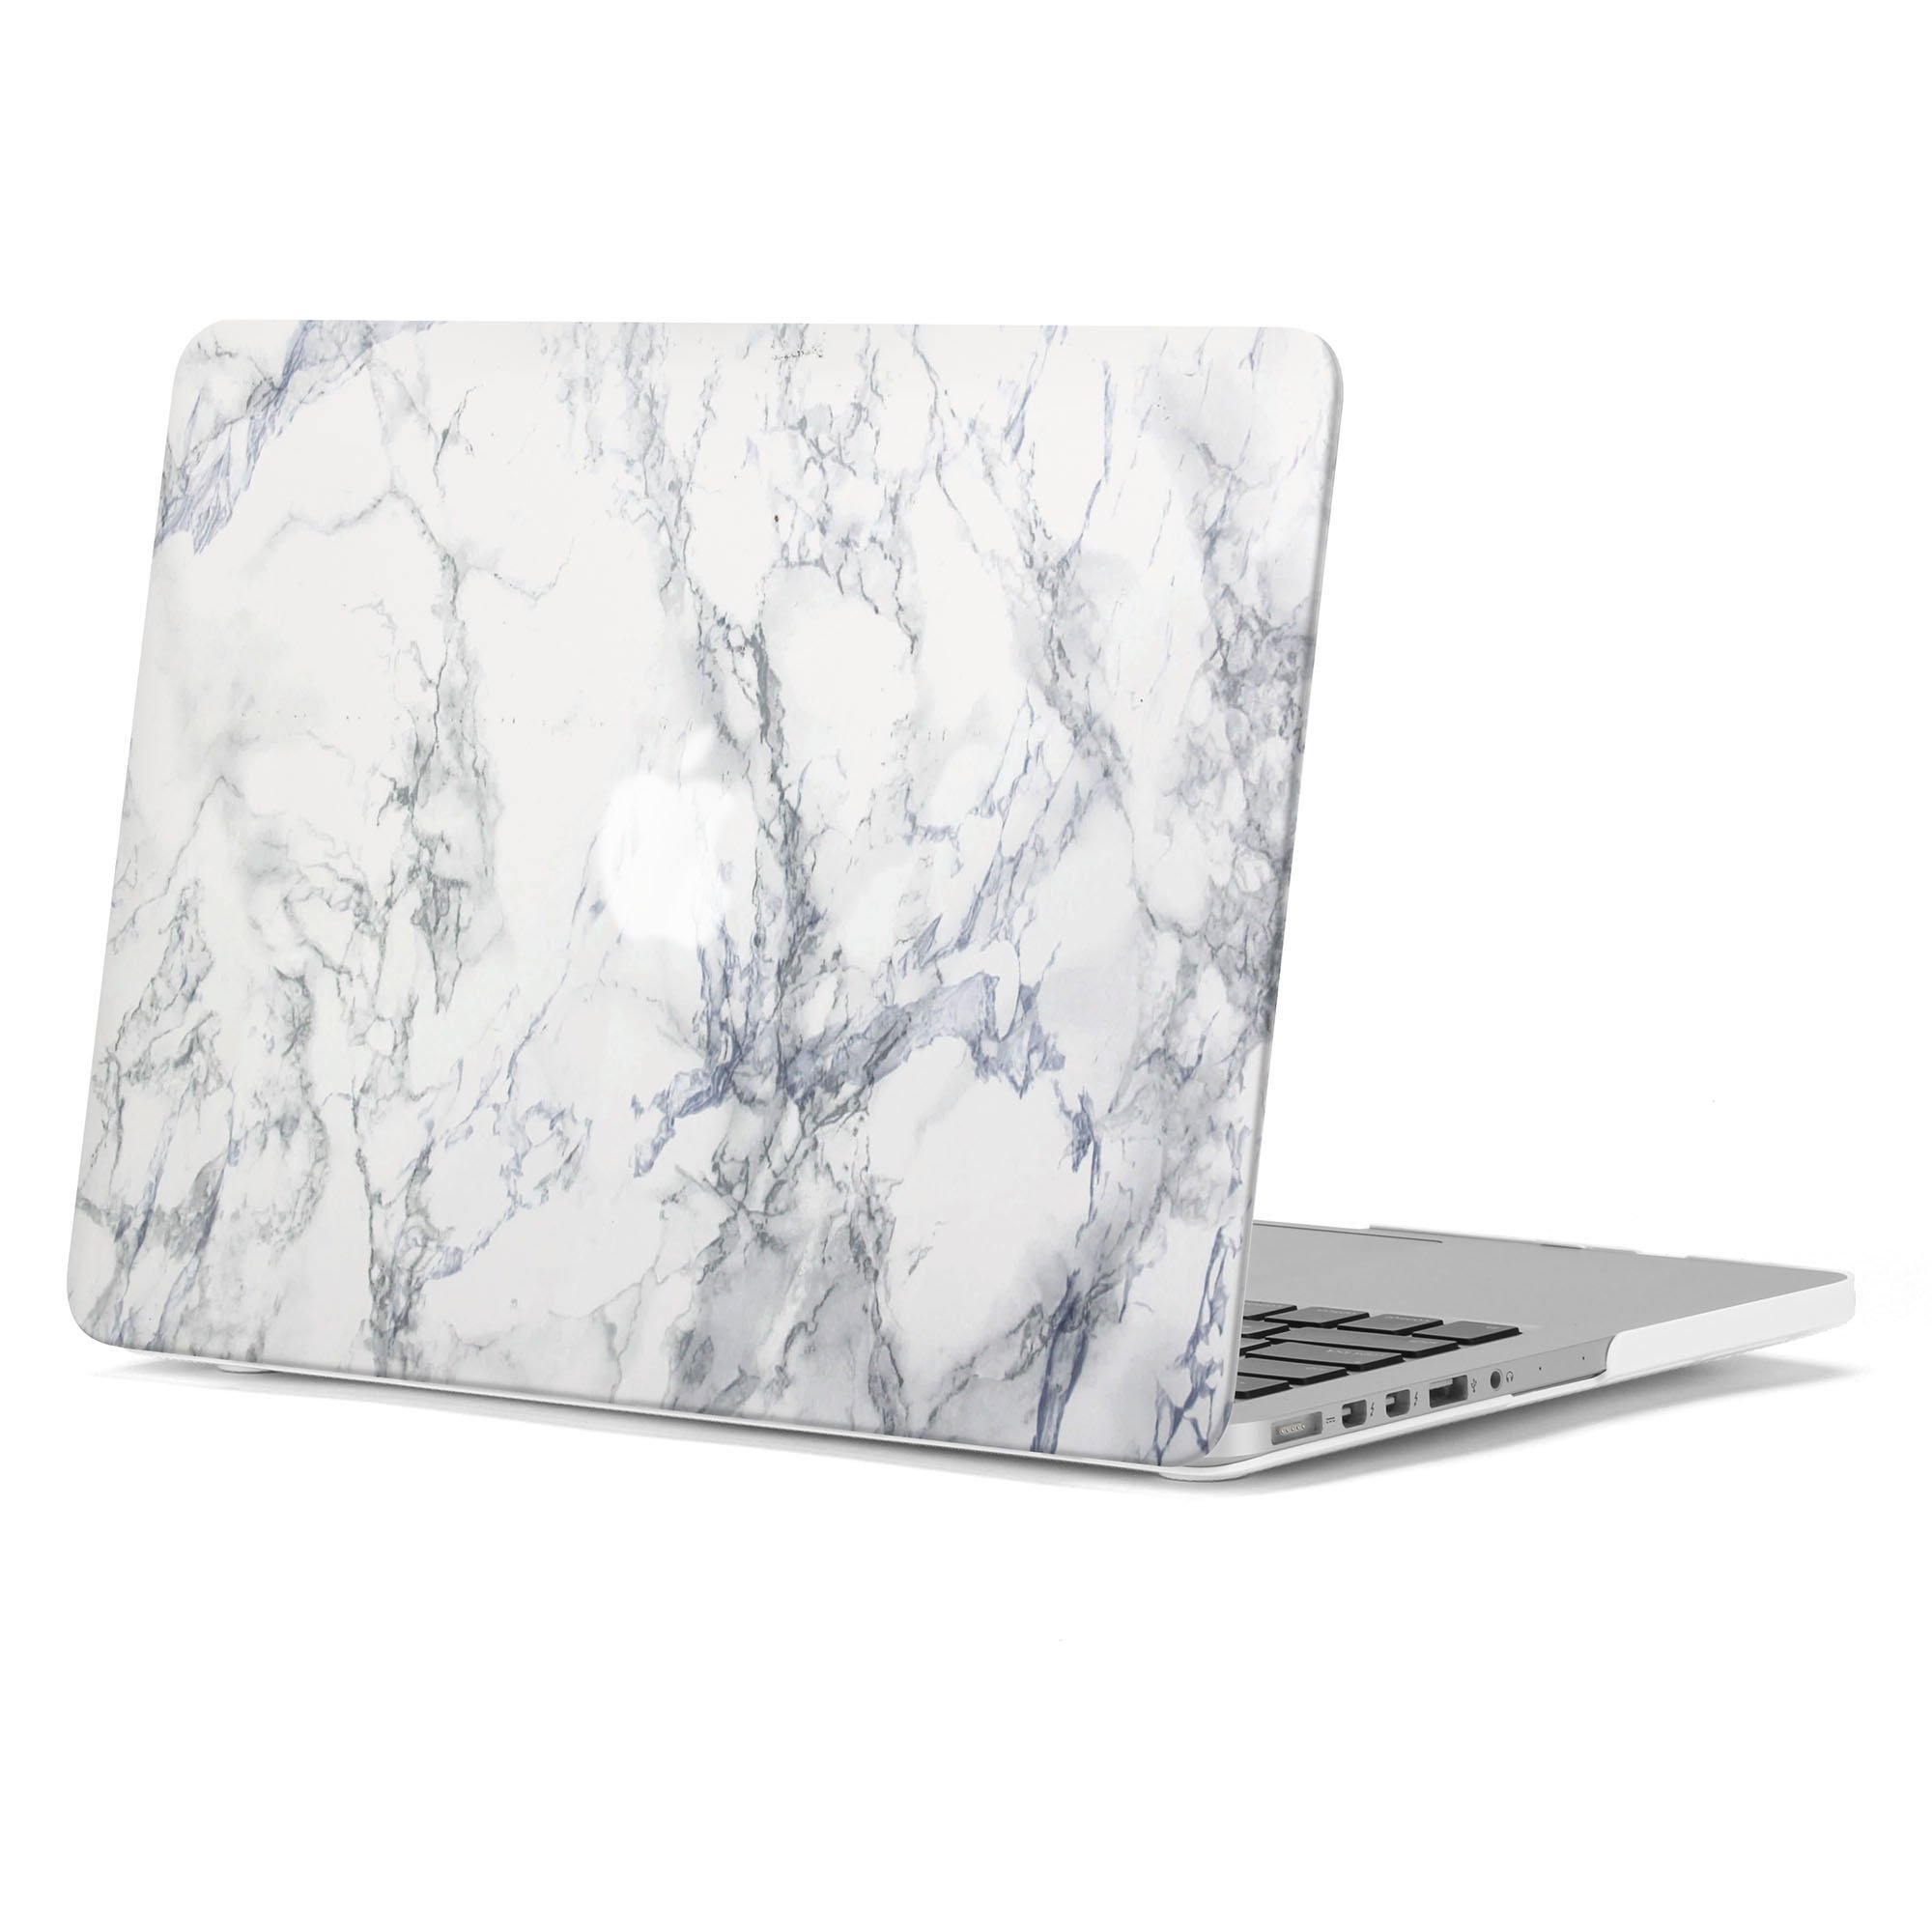 GMYLE White Marble Pattern Soft-Touch Frosted Hard Case Cover for Old MacBook Pro 13 inch with Retina Display (Model: A1425 and A1502) without CD-ROM Drive [2012-2015 Release]